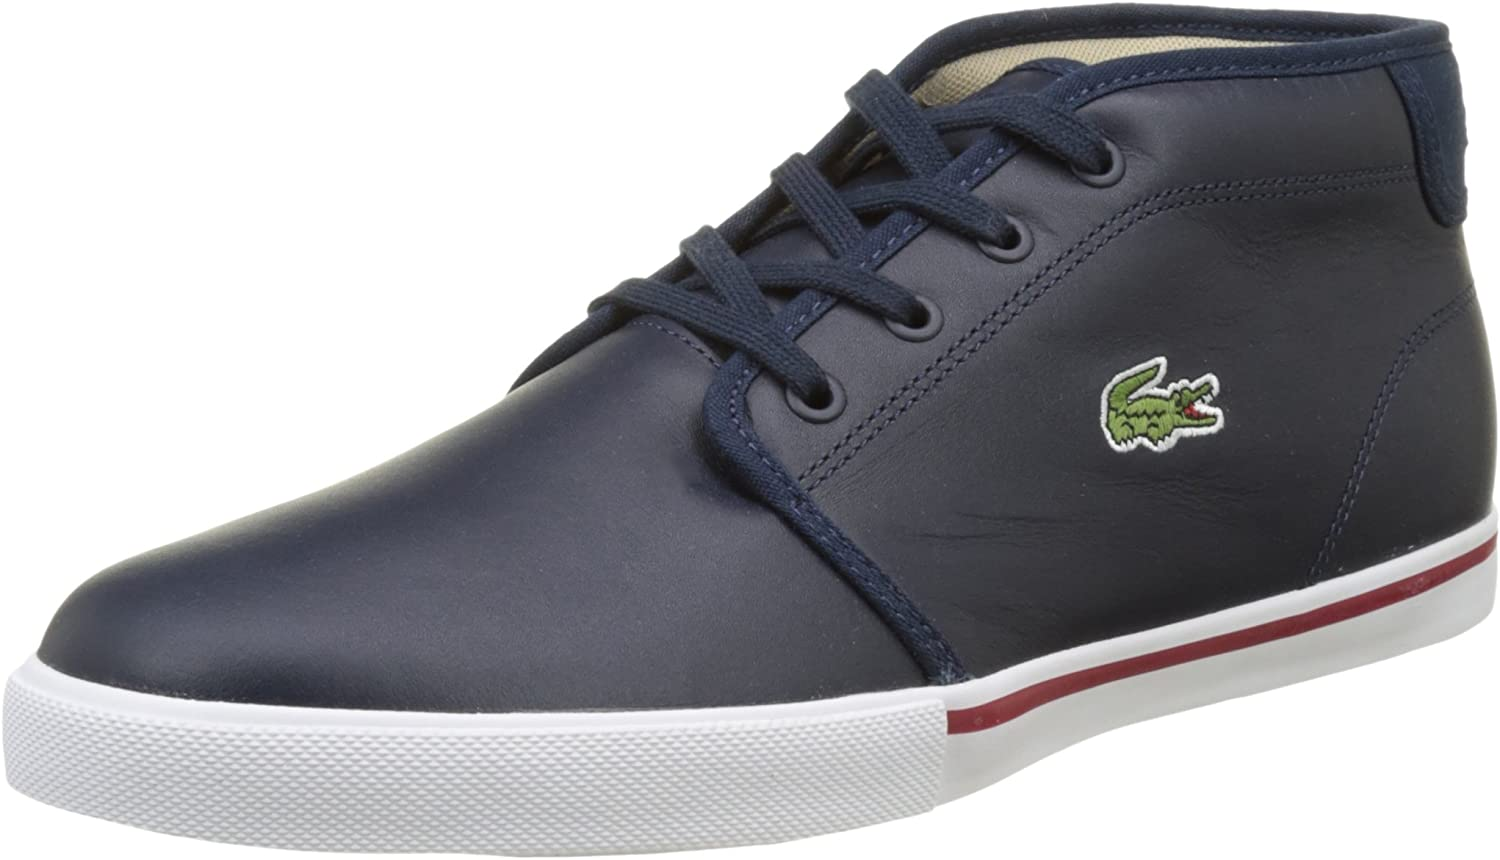 Lacoste Ampthill 117 1 CAM Nvy, Bajos Hombre